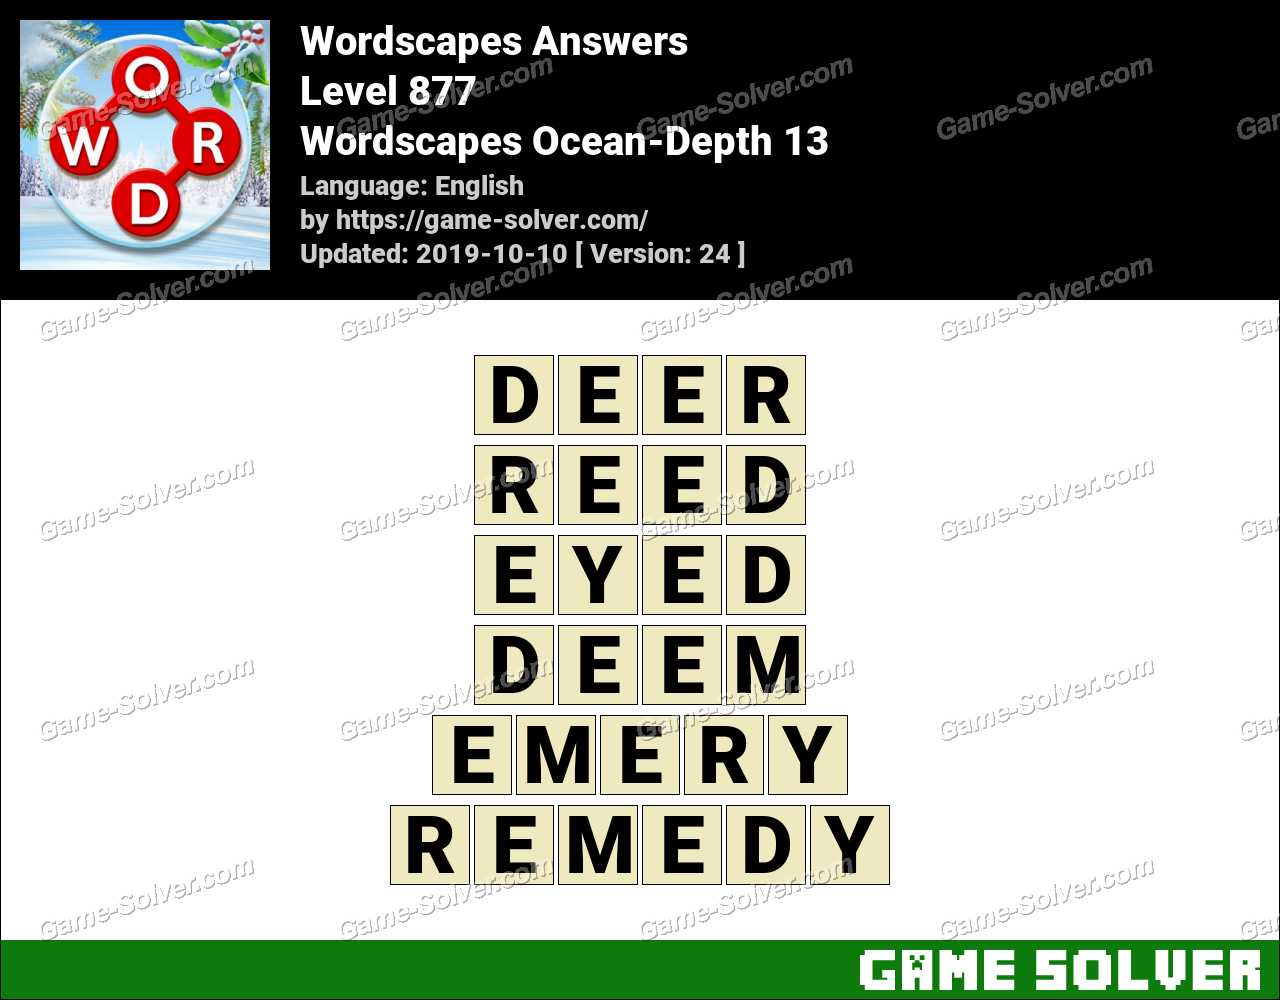 Wordscapes Ocean-Depth 13 Answers